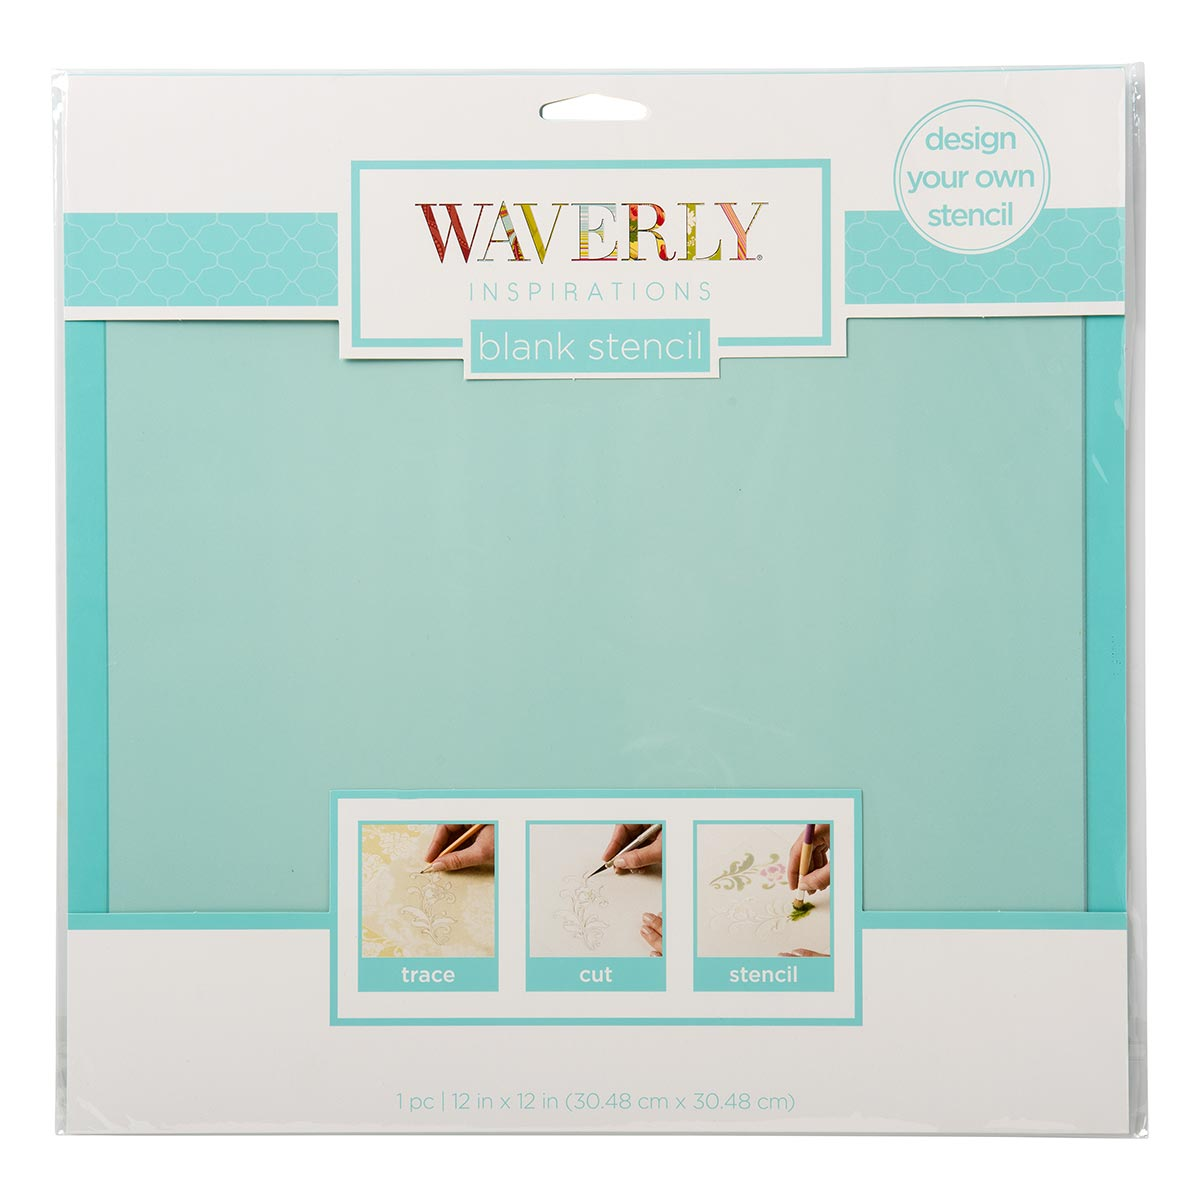 Waverly ® Inspirations Laser Stencils - Blank, 12